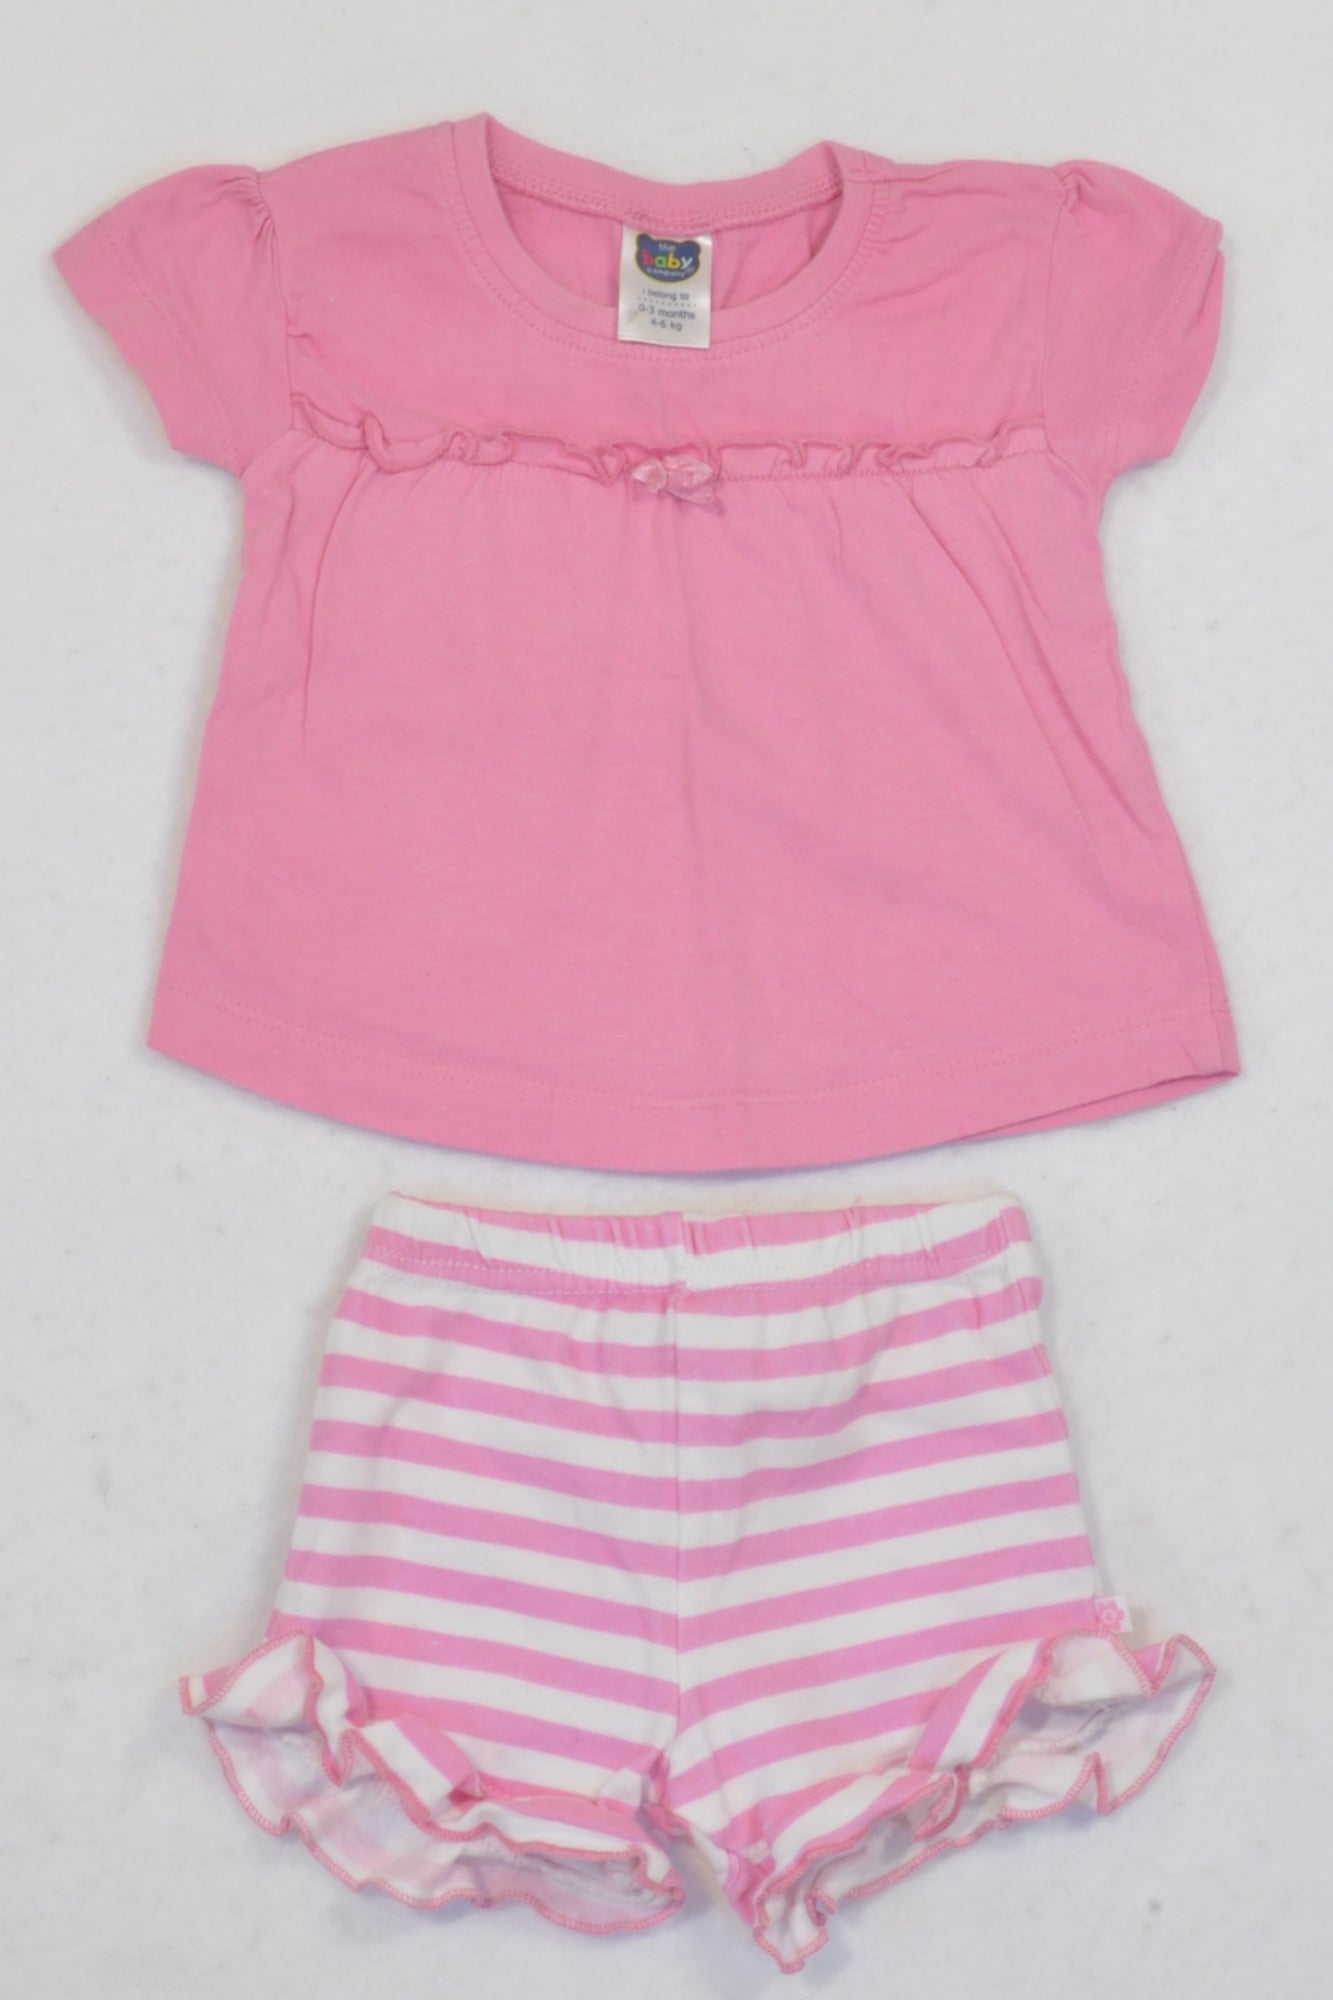 Ackermans Pink Ruffle Trim T-shirt & Shorts Outfit Girls 0-3 months